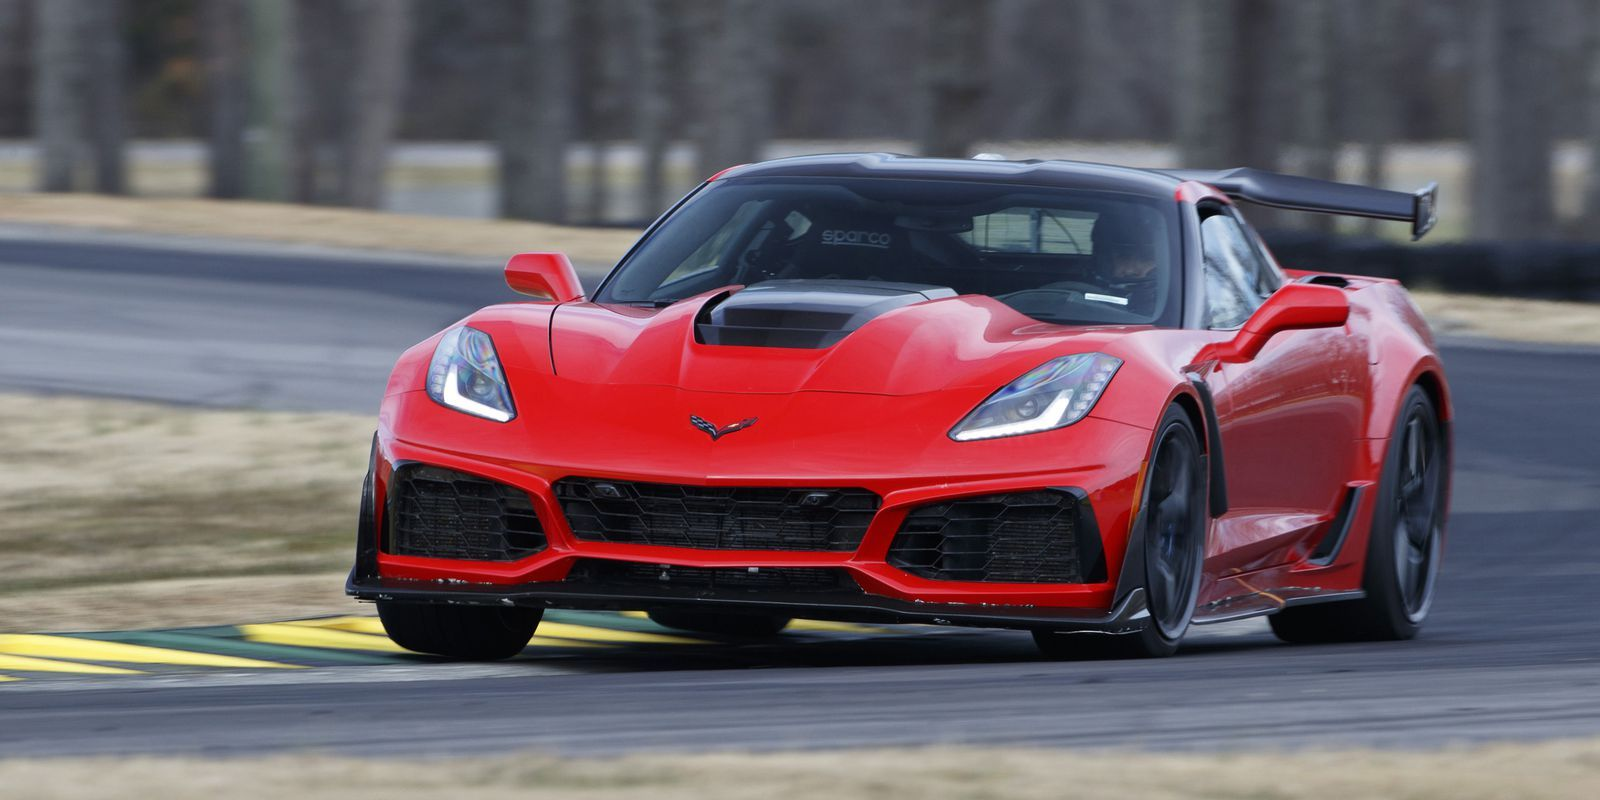 2019 Corvette ZR1 Does 060 in 2.85 Seconds, Hits 100 in